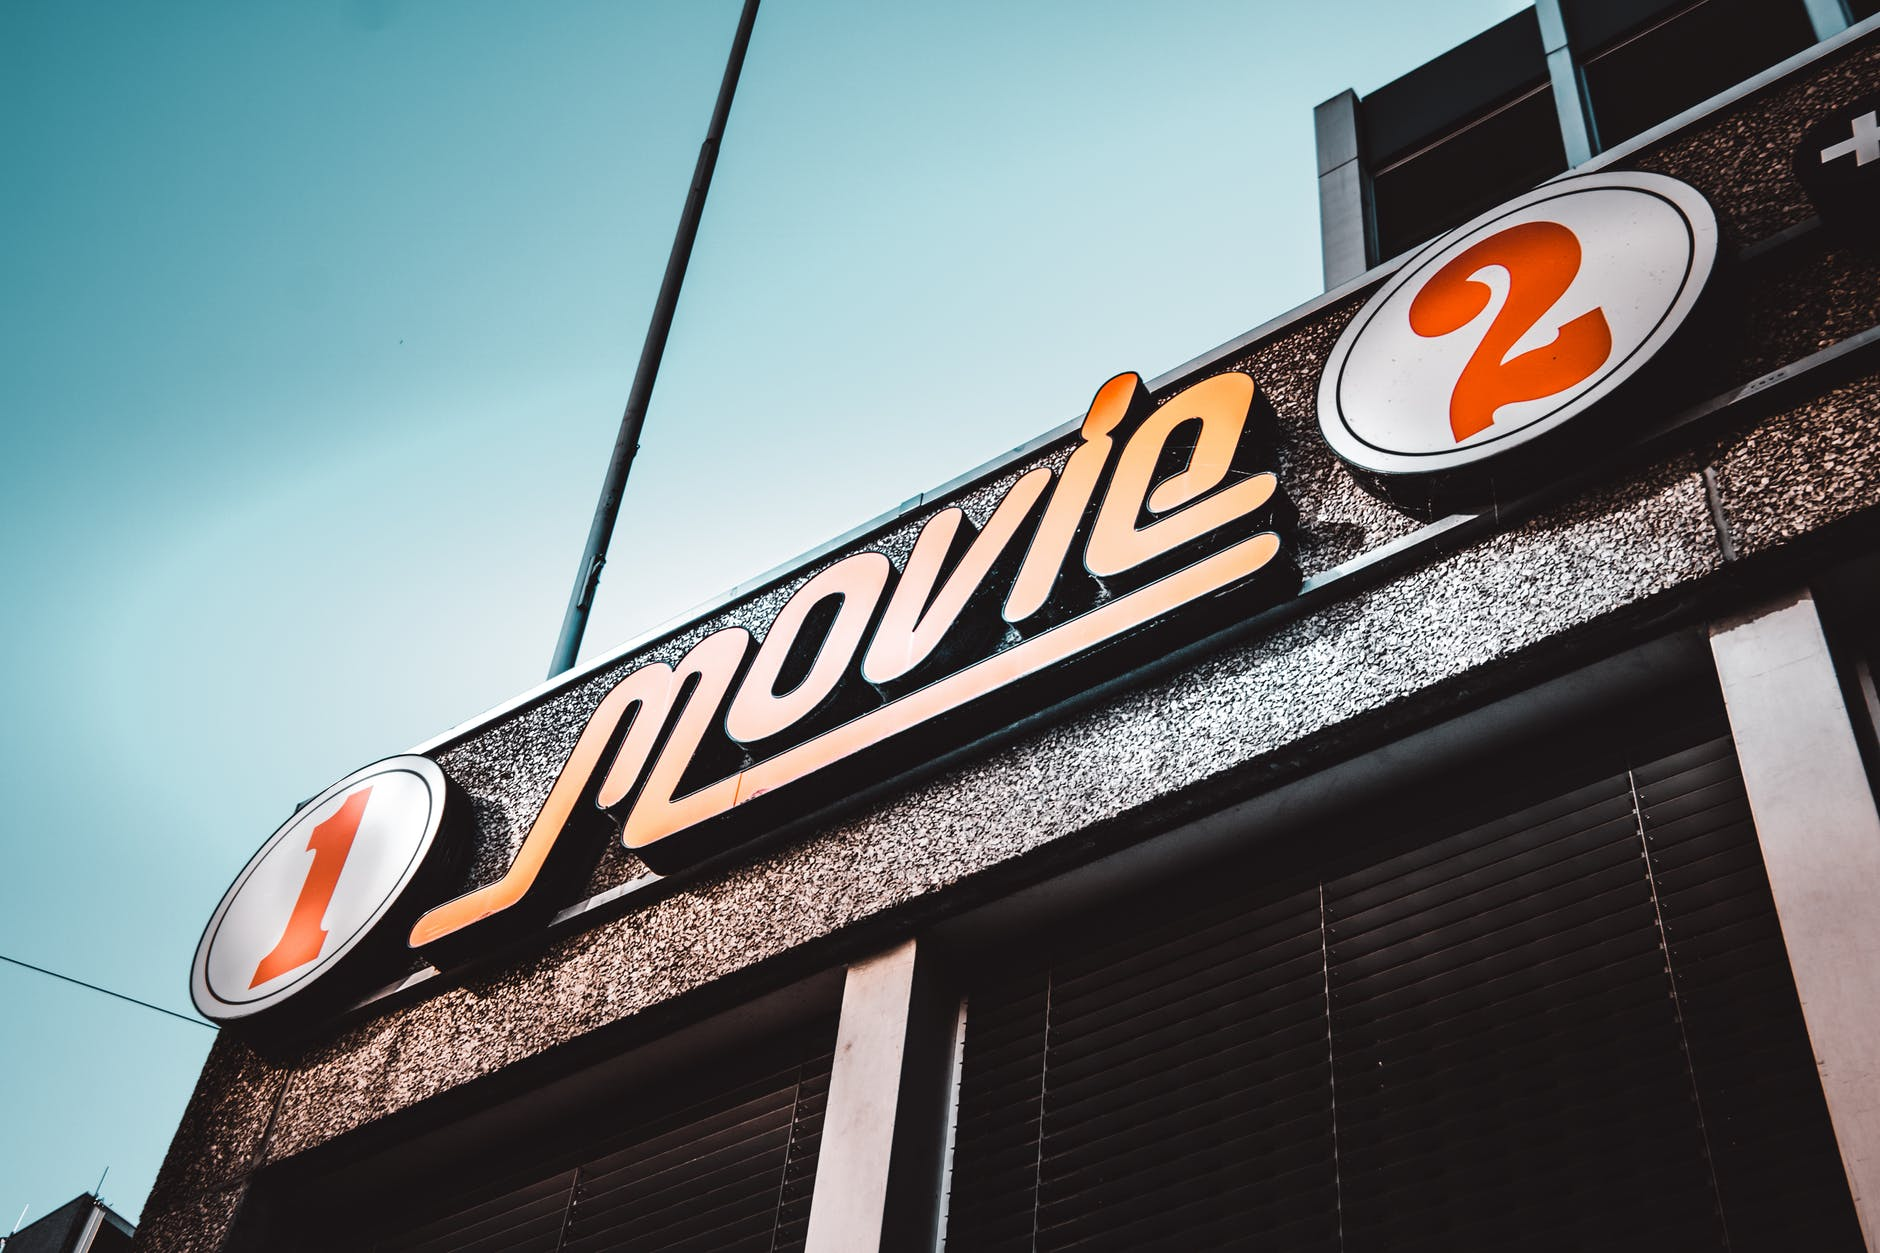 the entrance to a movie theater with a sign saying MOVIE